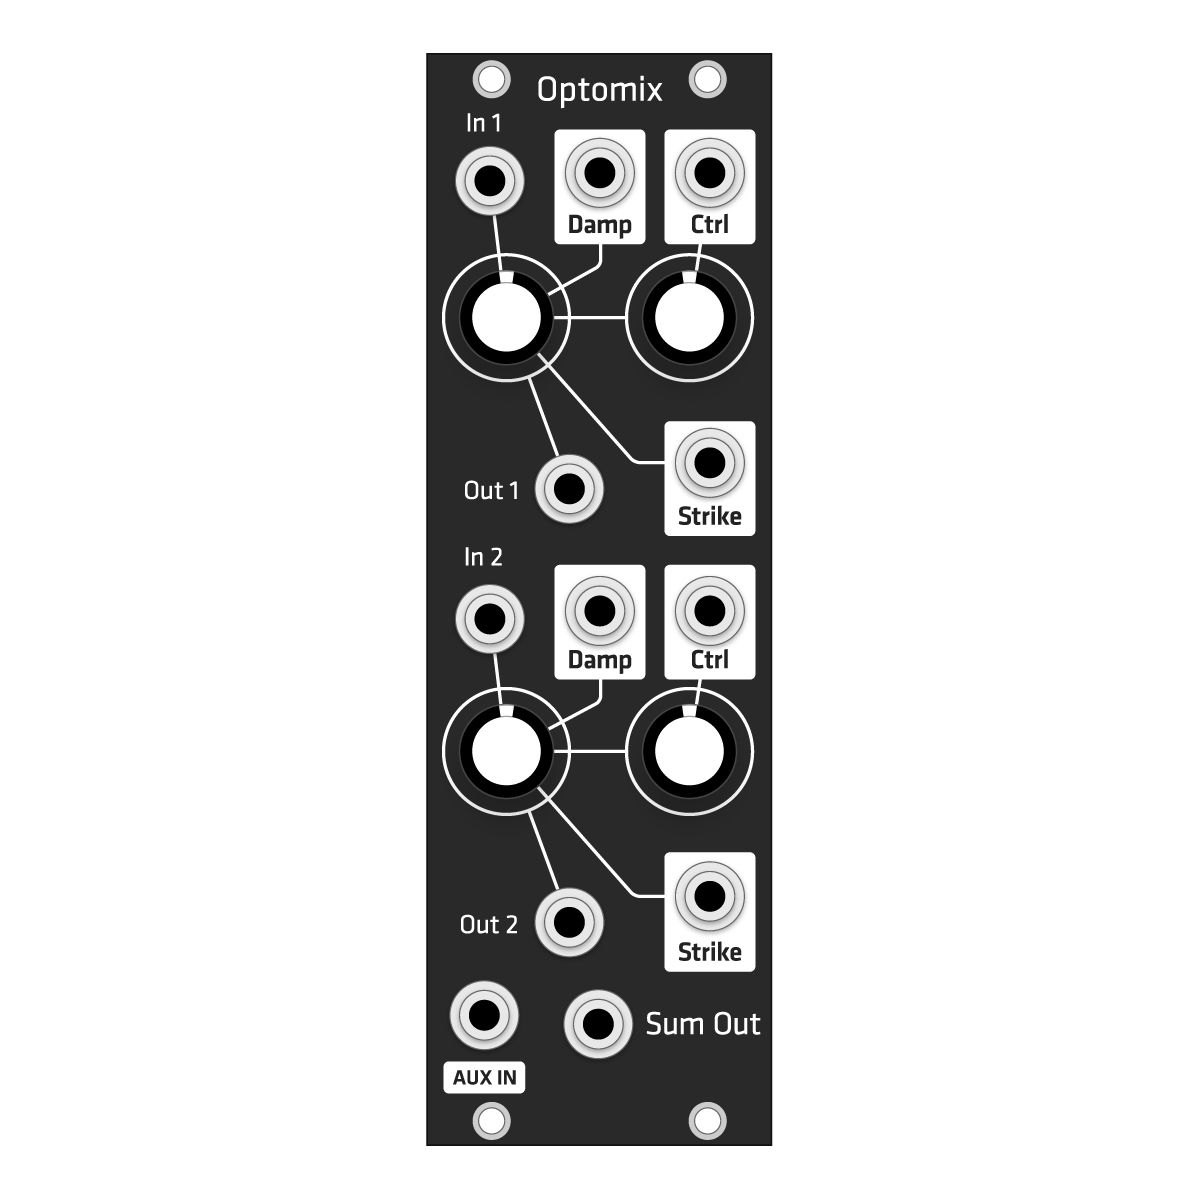 Grayscale Replacement Panel - Make Noise Optomix (Black Matte)